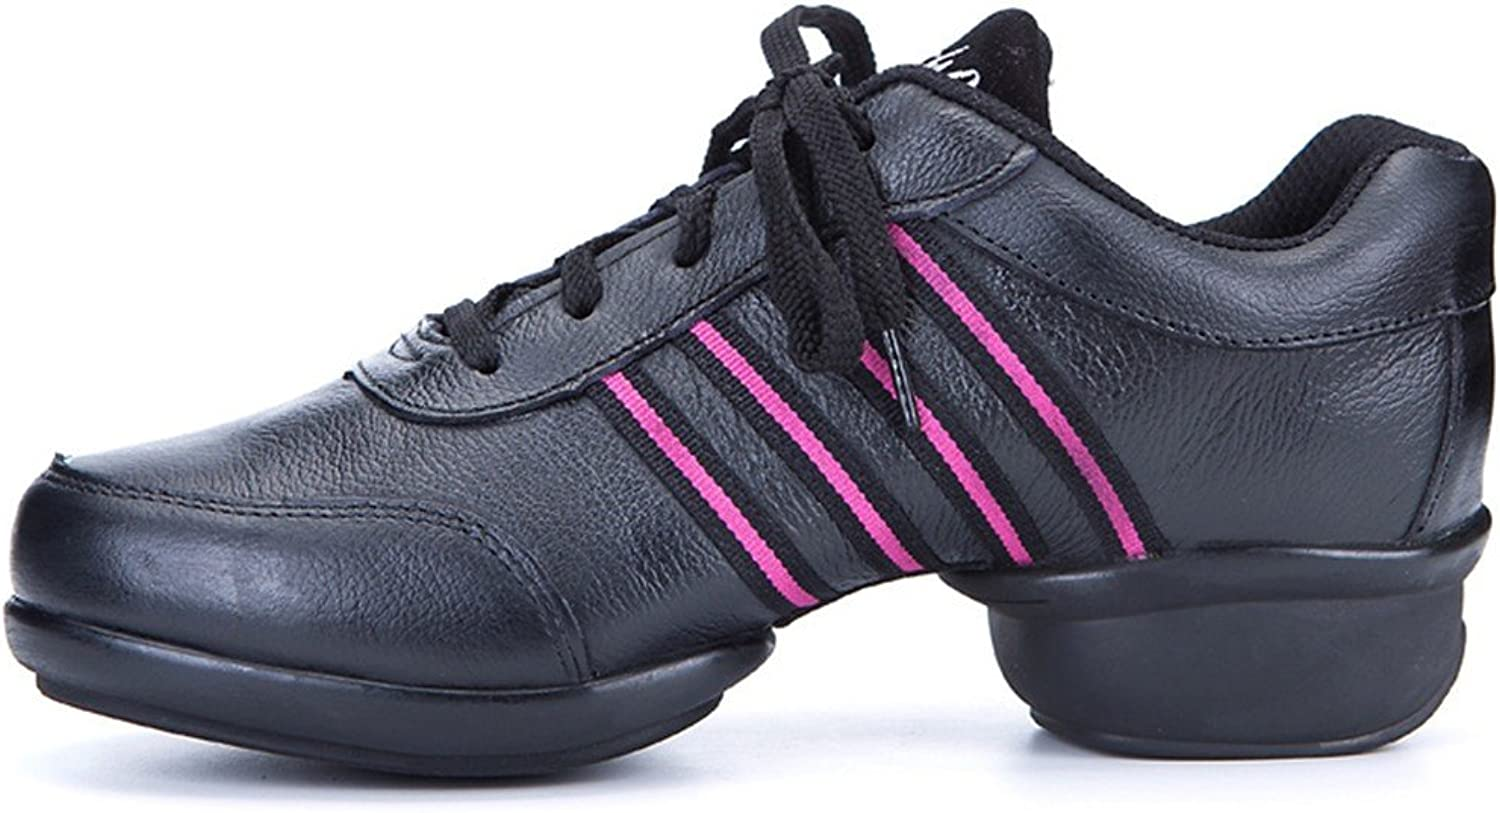 WXMDDN The Girl Jazz Dance shoes Dance shoes Black mesh Dance shoes Leather shoes in The Professional Dance Dance shoes